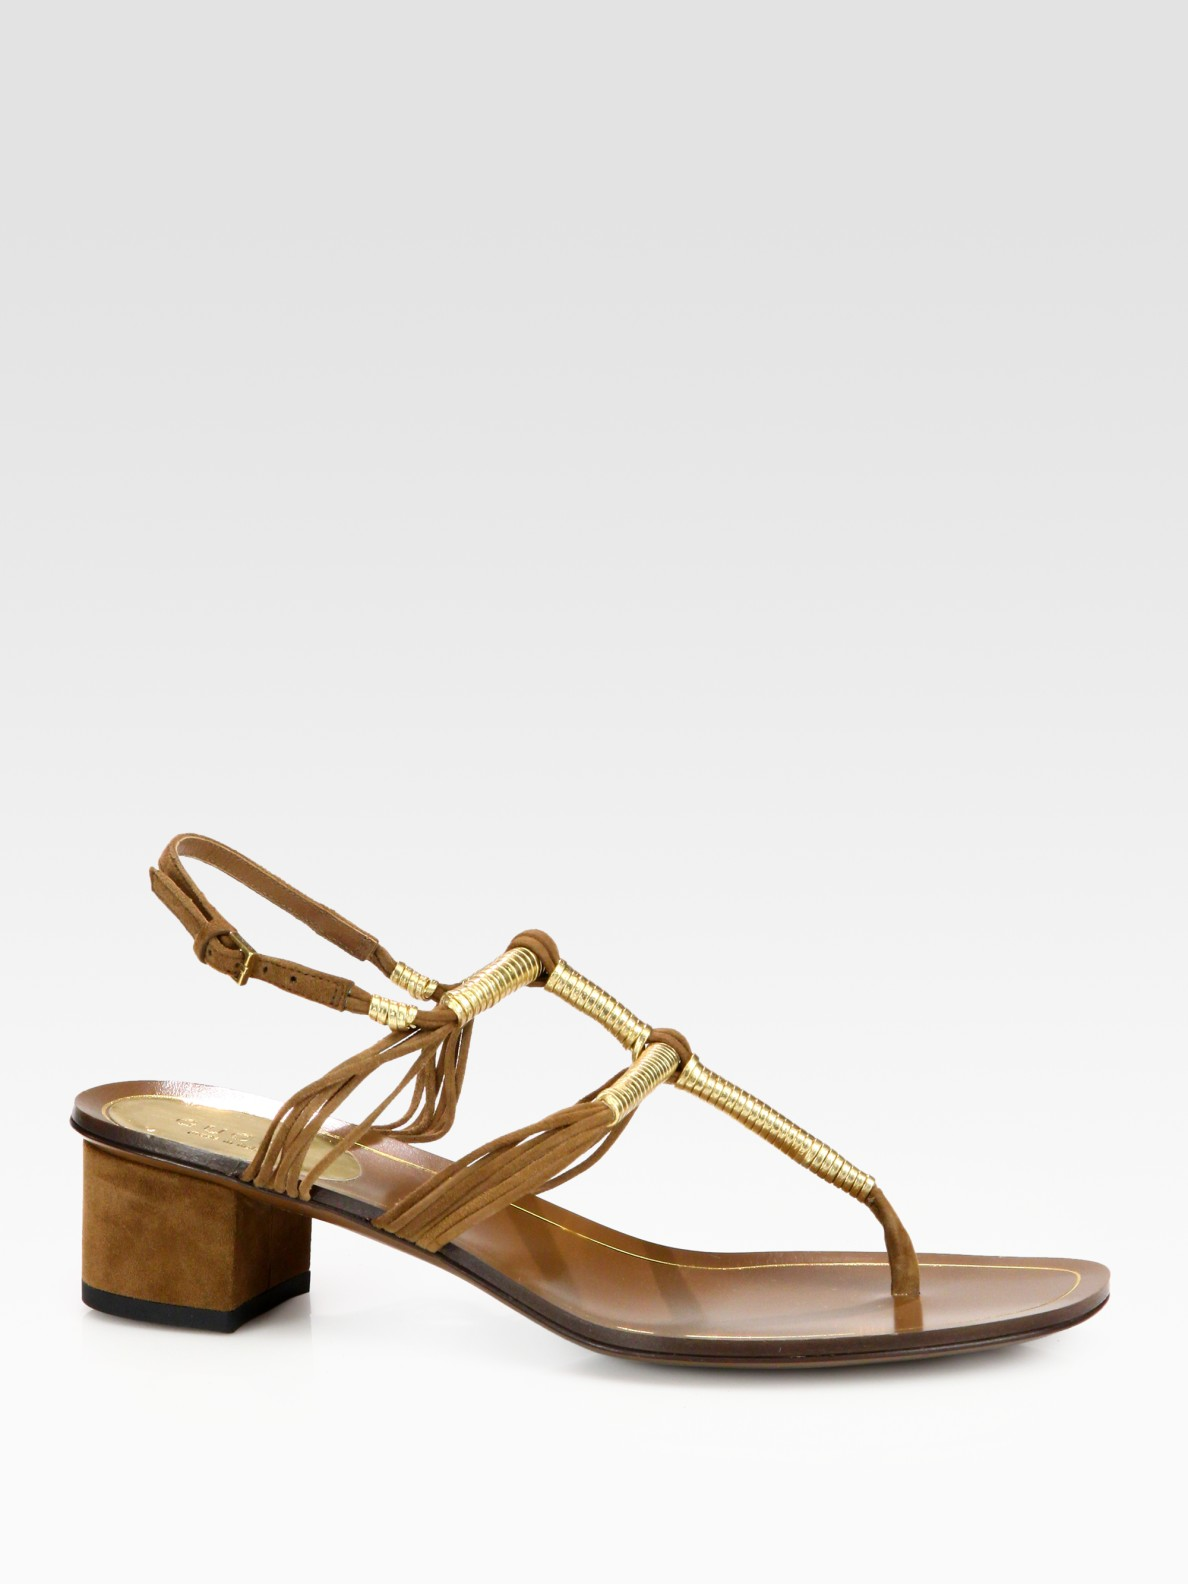 090169a6e32a34 Lyst - Gucci Anita Metallic Leather Suede Thong Sandals in Metallic